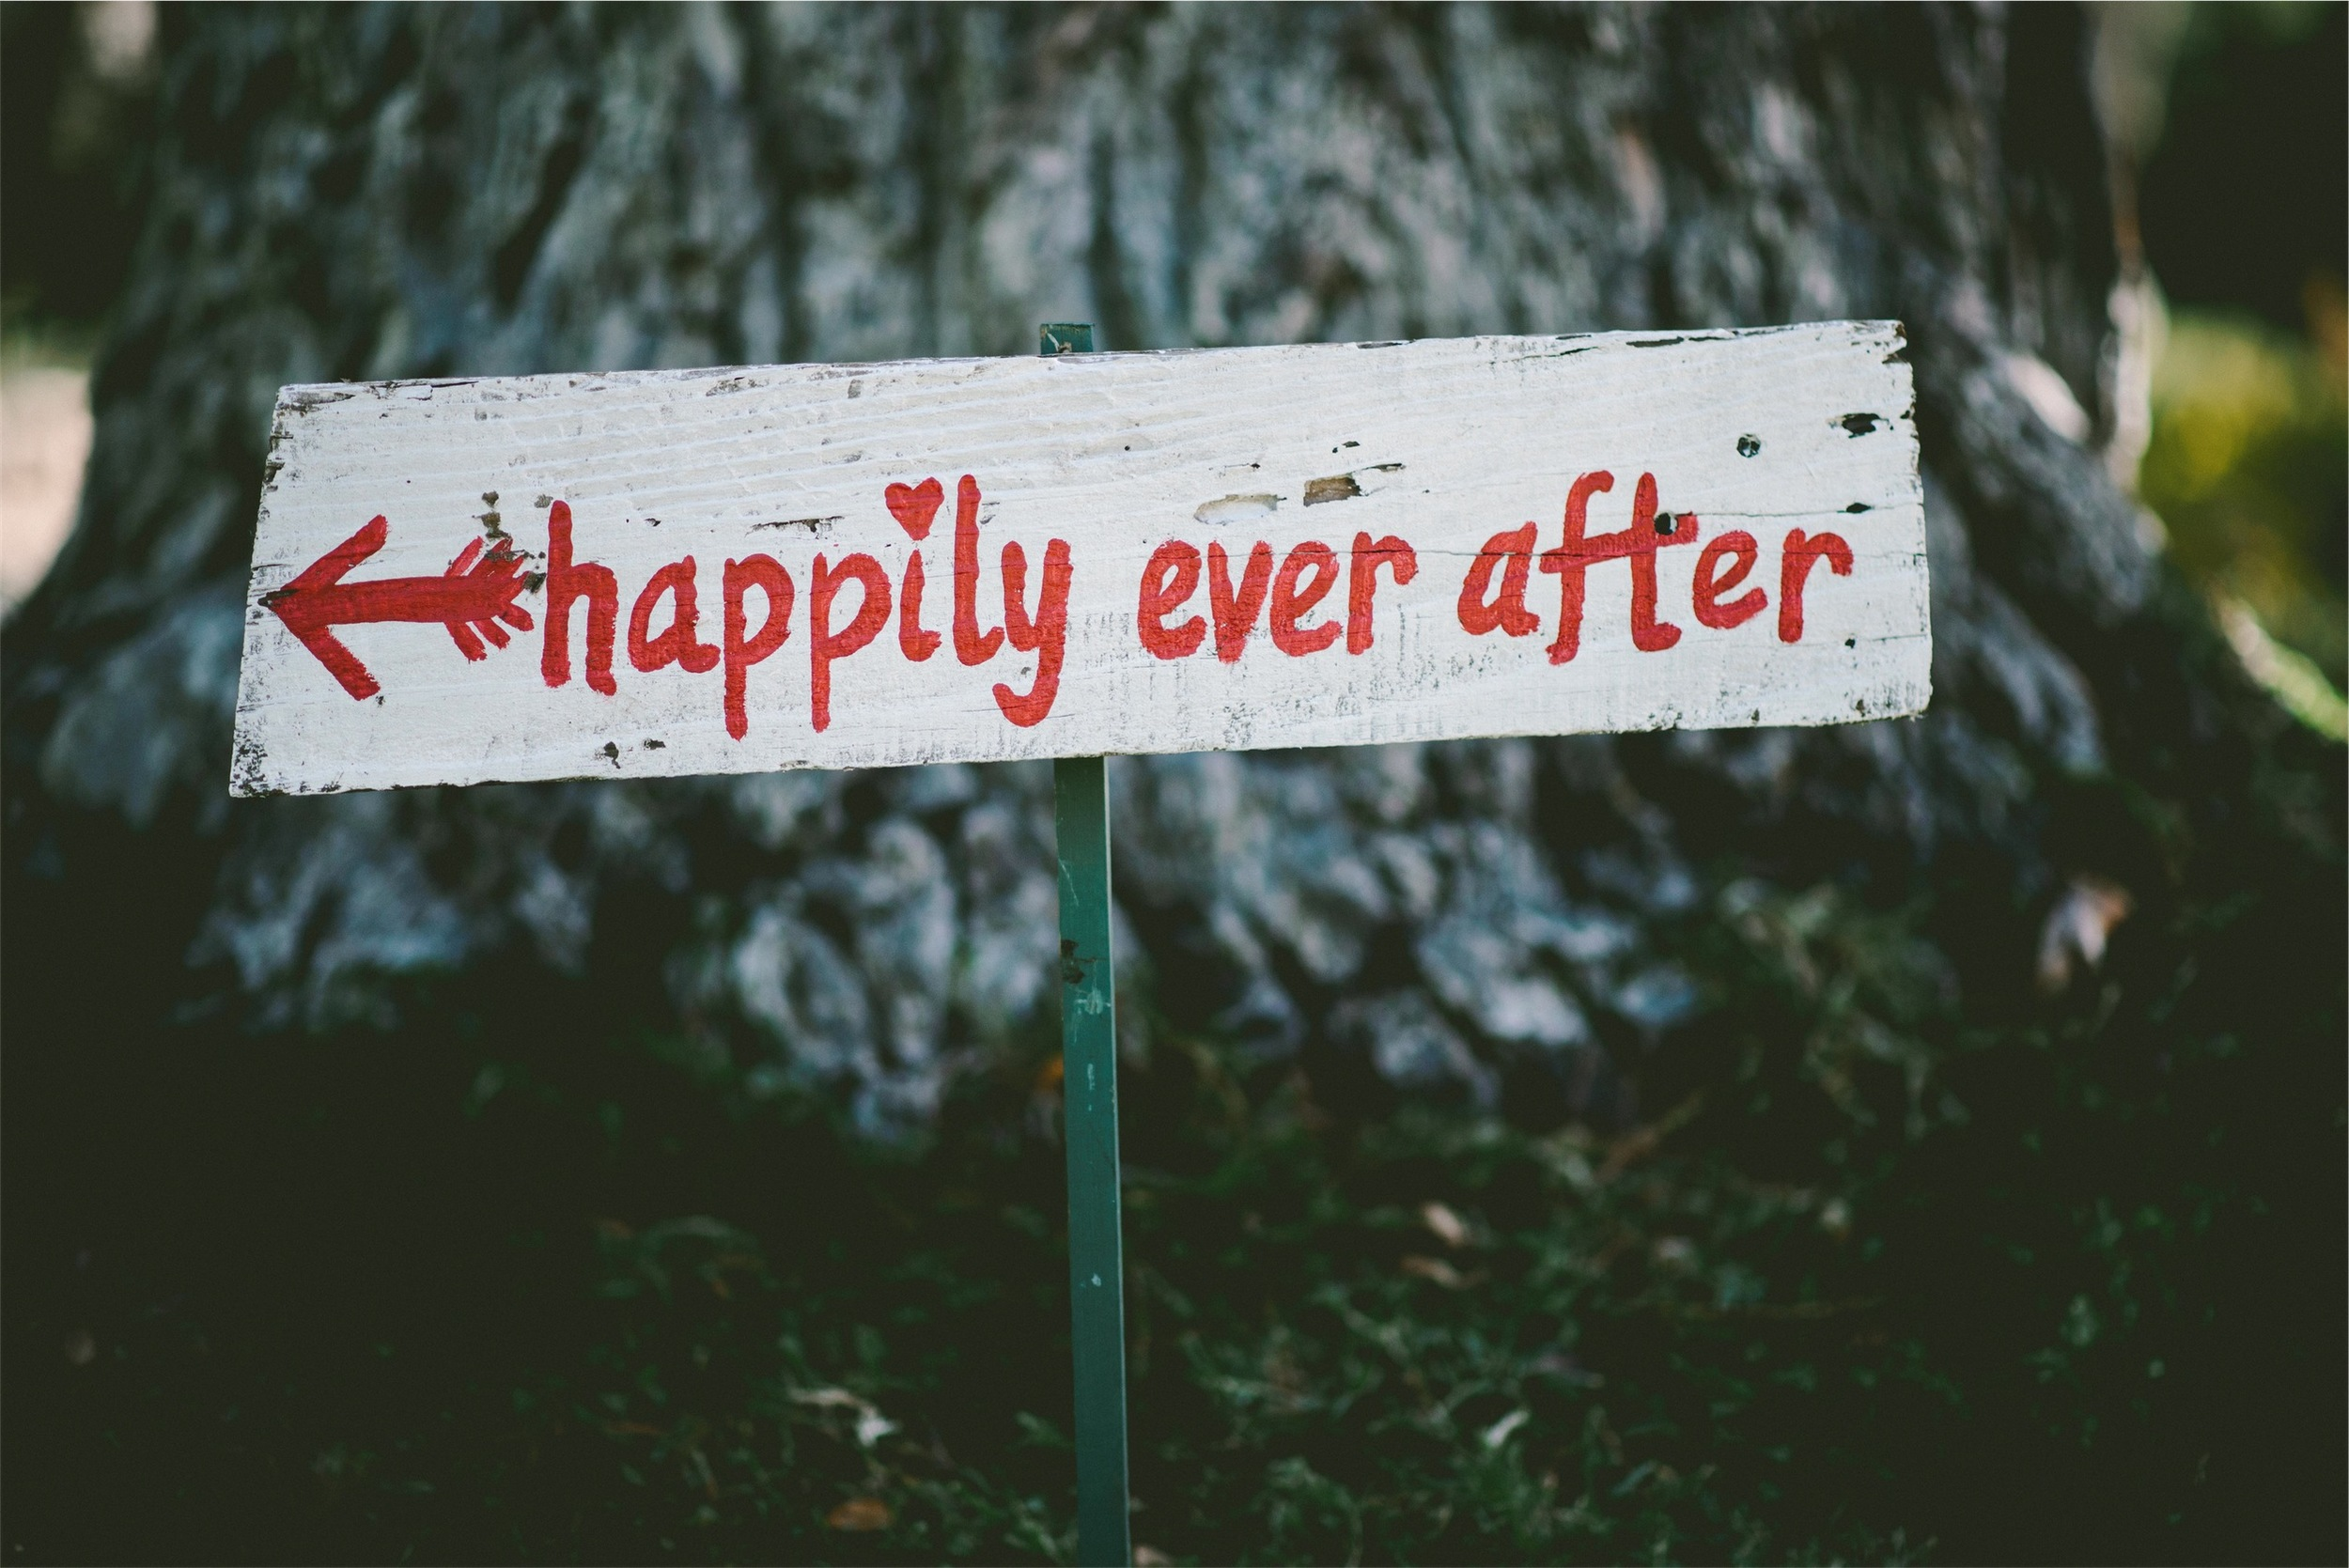 affair counseling columbia mo, happily ever after